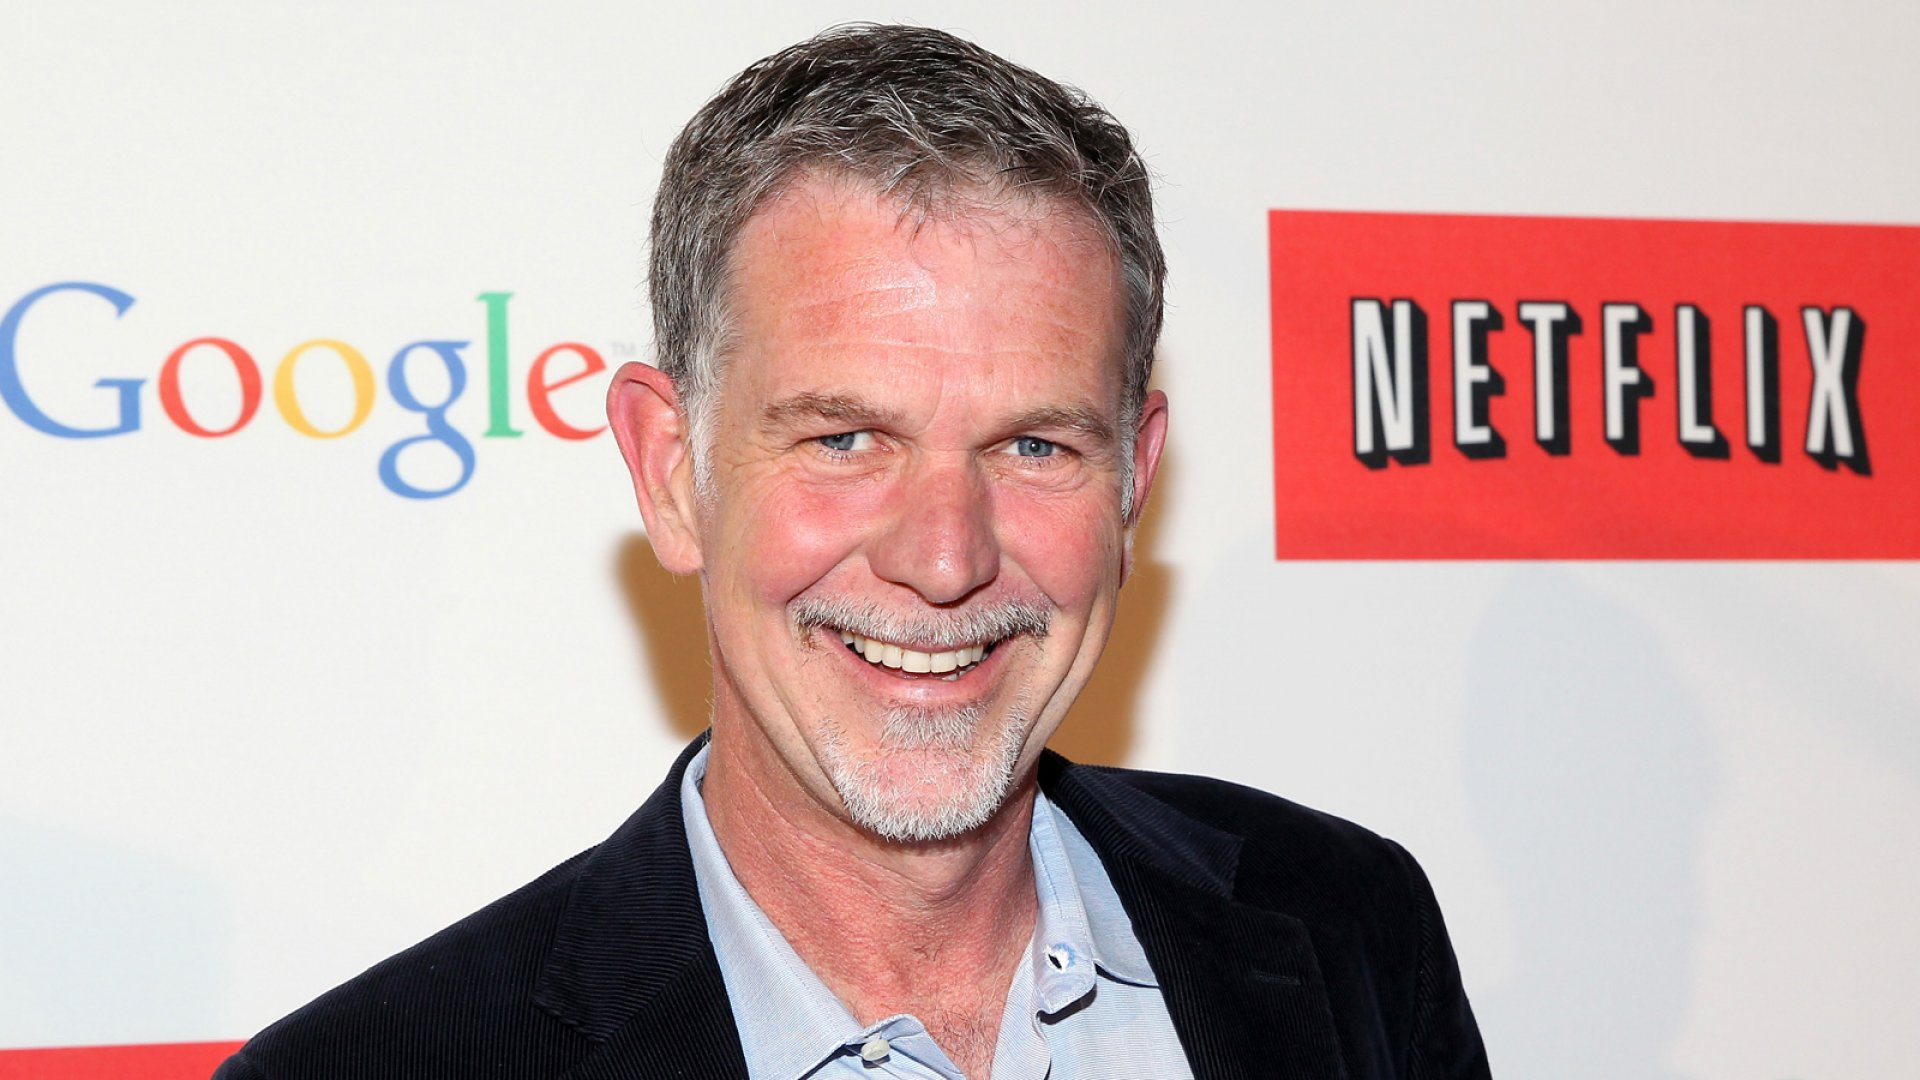 Netflix Founder Reed Hastings: 'Make as Few Decisions as Possible'